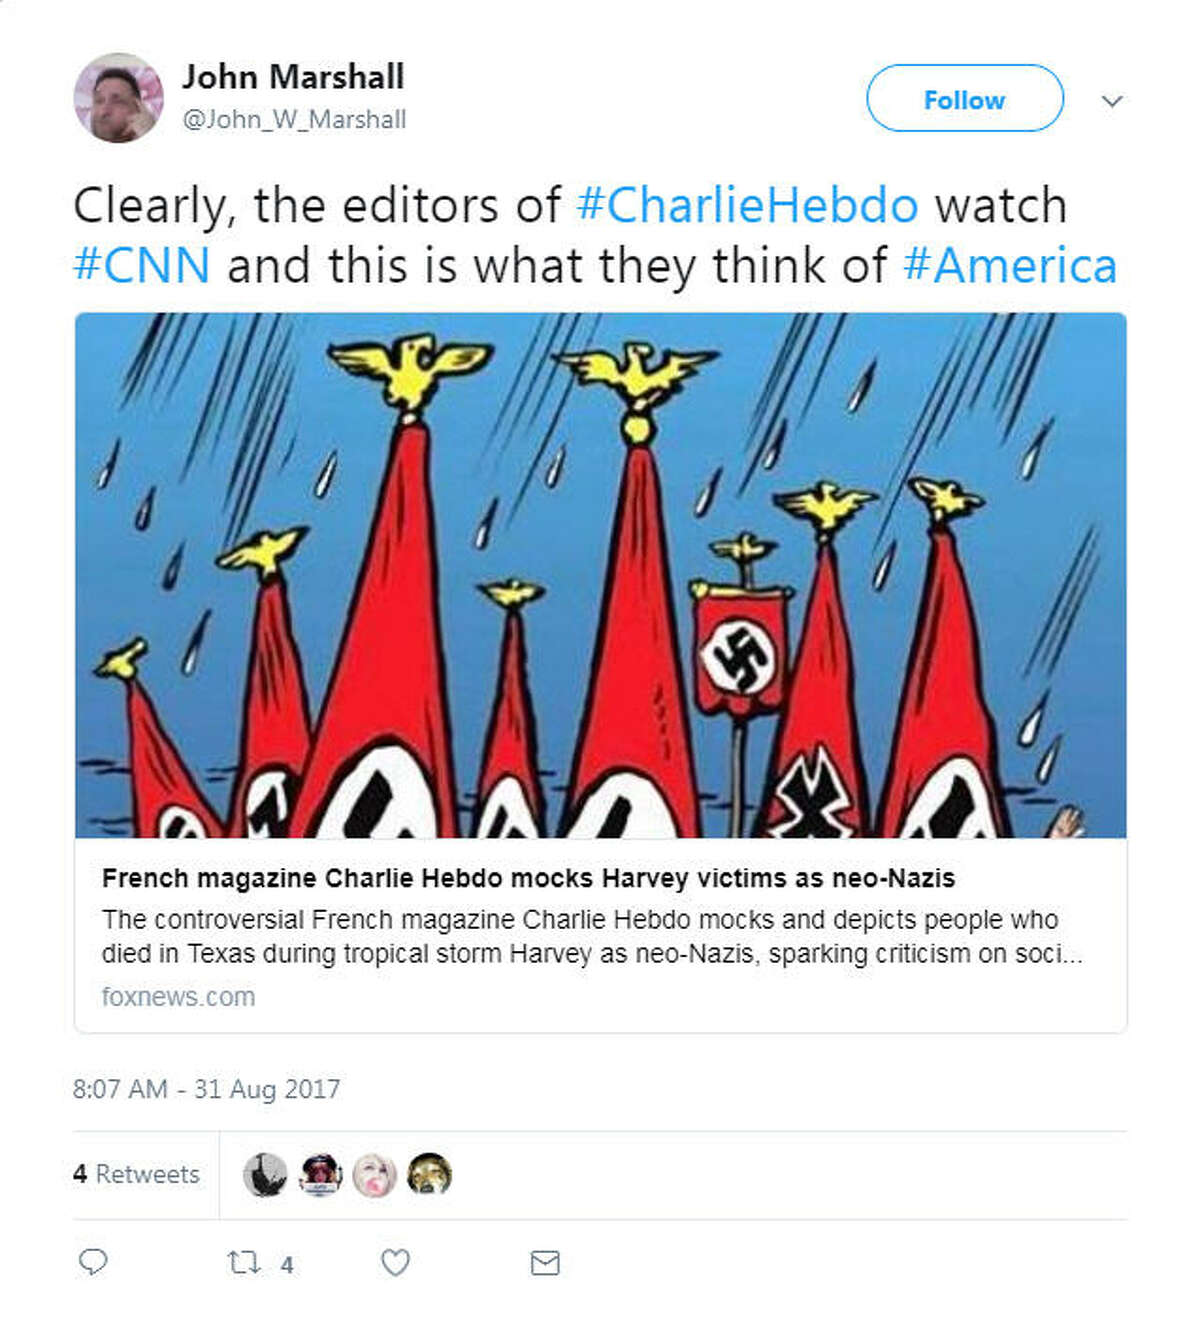 Thursday, satirical French magazine Charlie Hebdo drew strong condemnation for an illustrated cover that portrayed Hurricane Harvey victims in Texas as Nazis and racists.